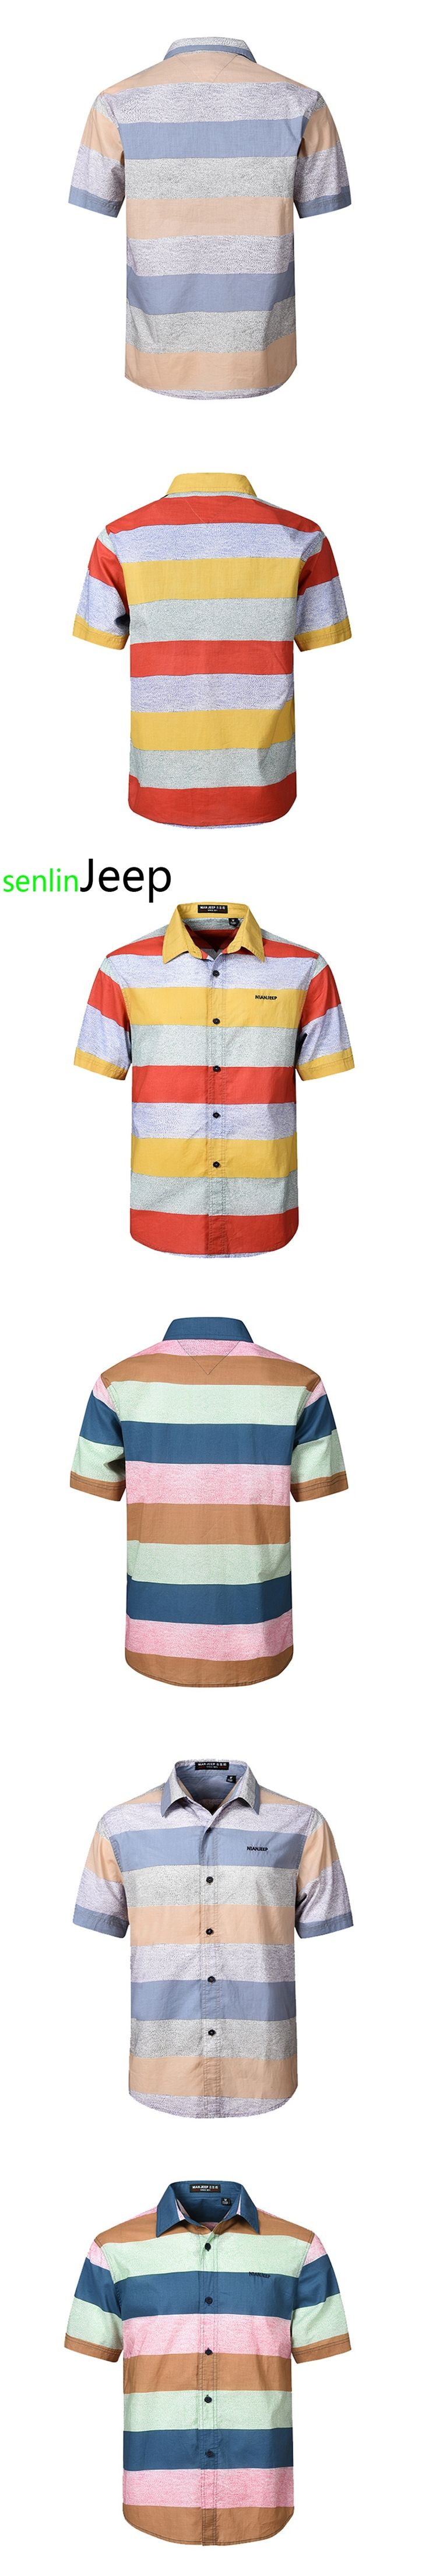 Men's Spring and Autumn Wild Casual Polo Shirt New High-grade Cotton Fashion Stripes Polo Shirt Breathable Large Polo Shirt 82